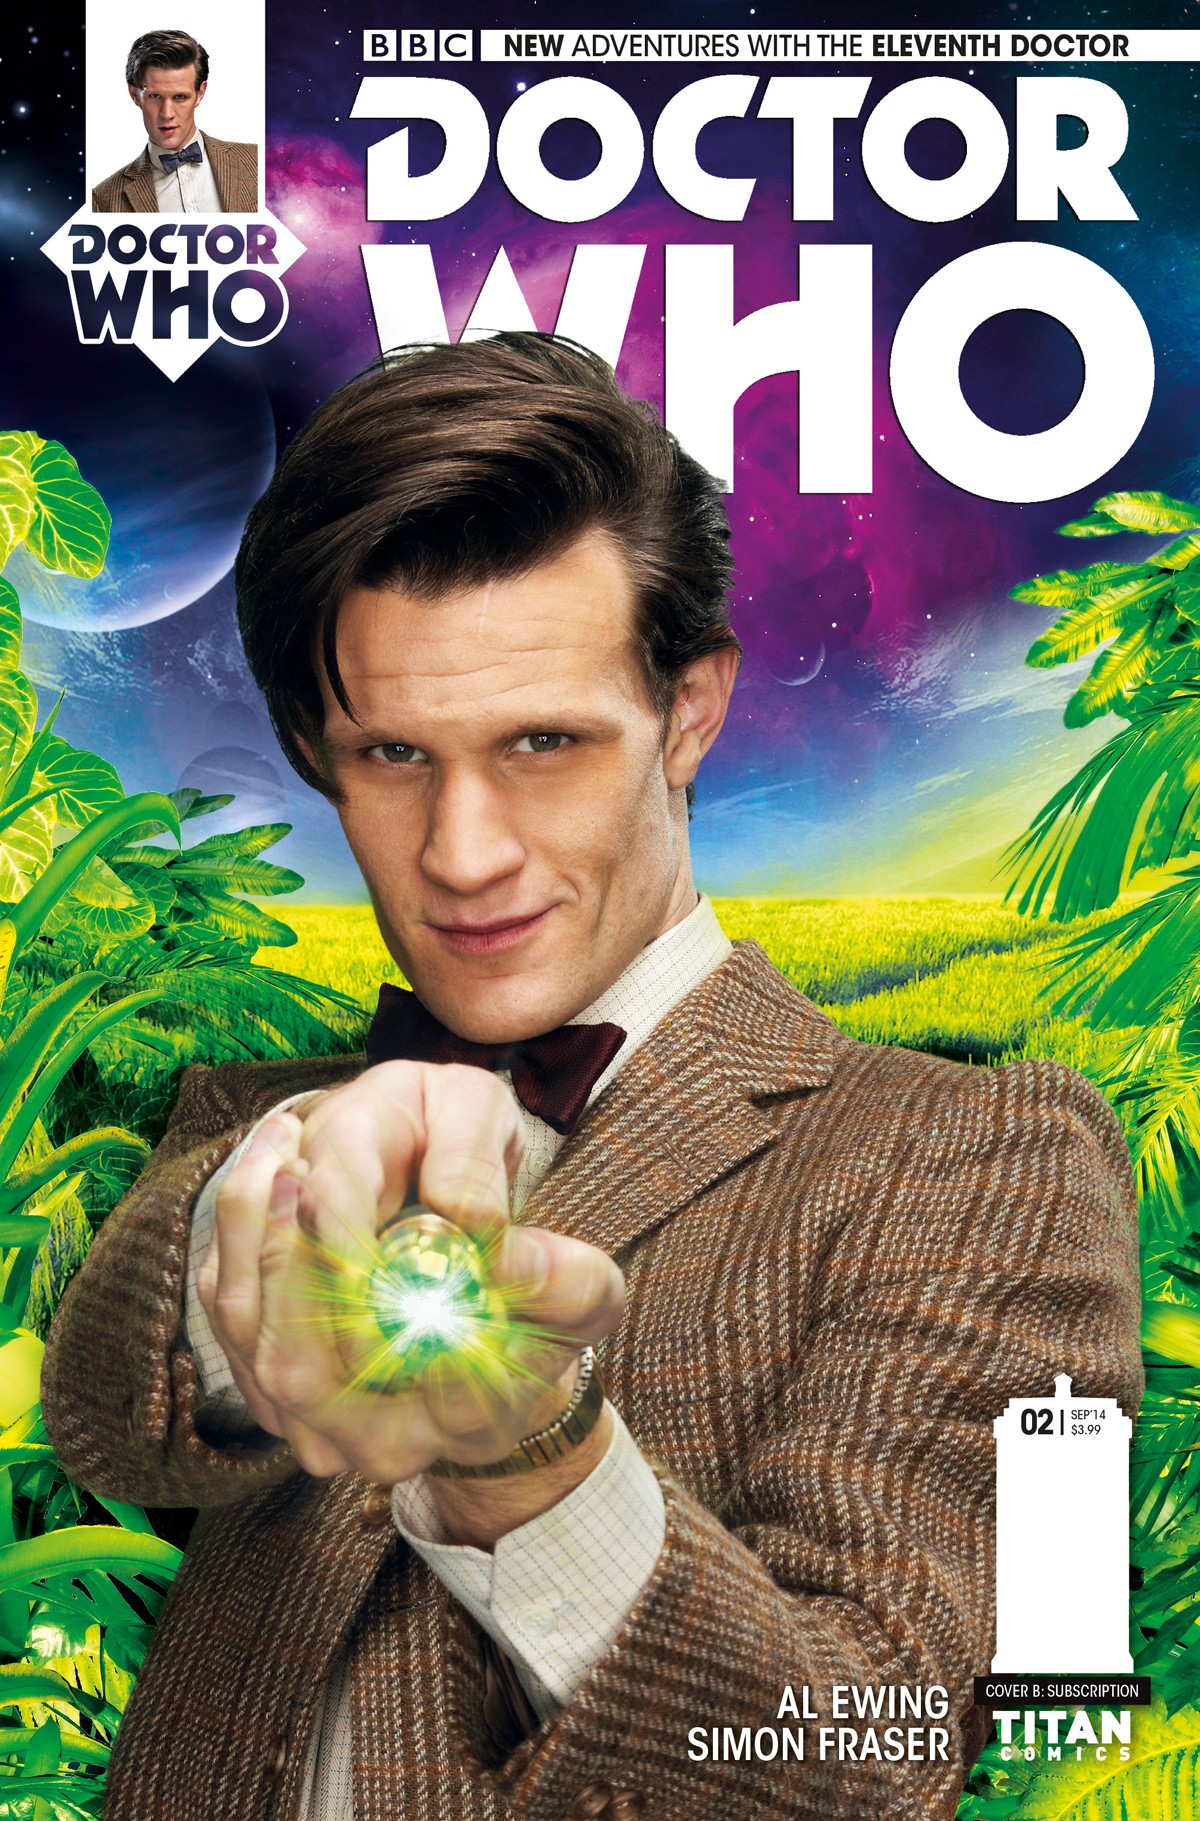 DOCTOR WHO 11TH #2 SUBSCRIPTION PHOTO